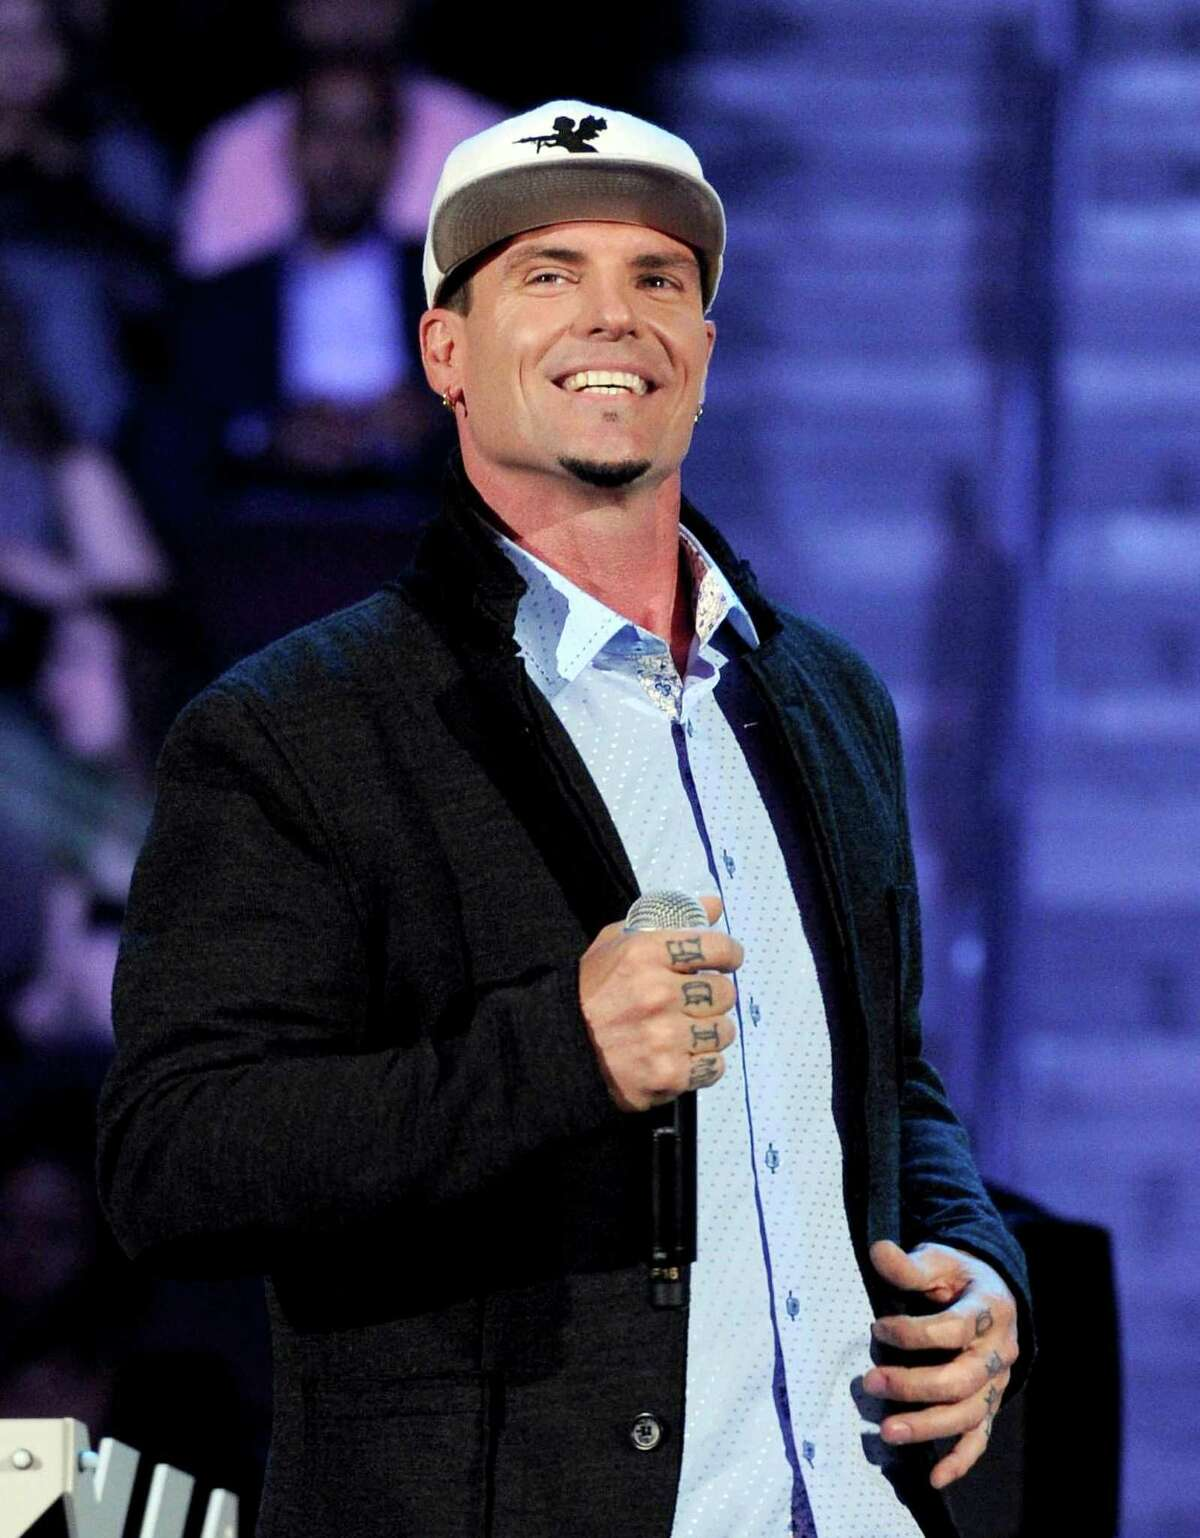 FILE - In this Nov. 8, 2013 file photo, recording Artist Vanilla Ice appears at the 2013 Soul Train Awards at the Orleans Arena in Las Vegas.